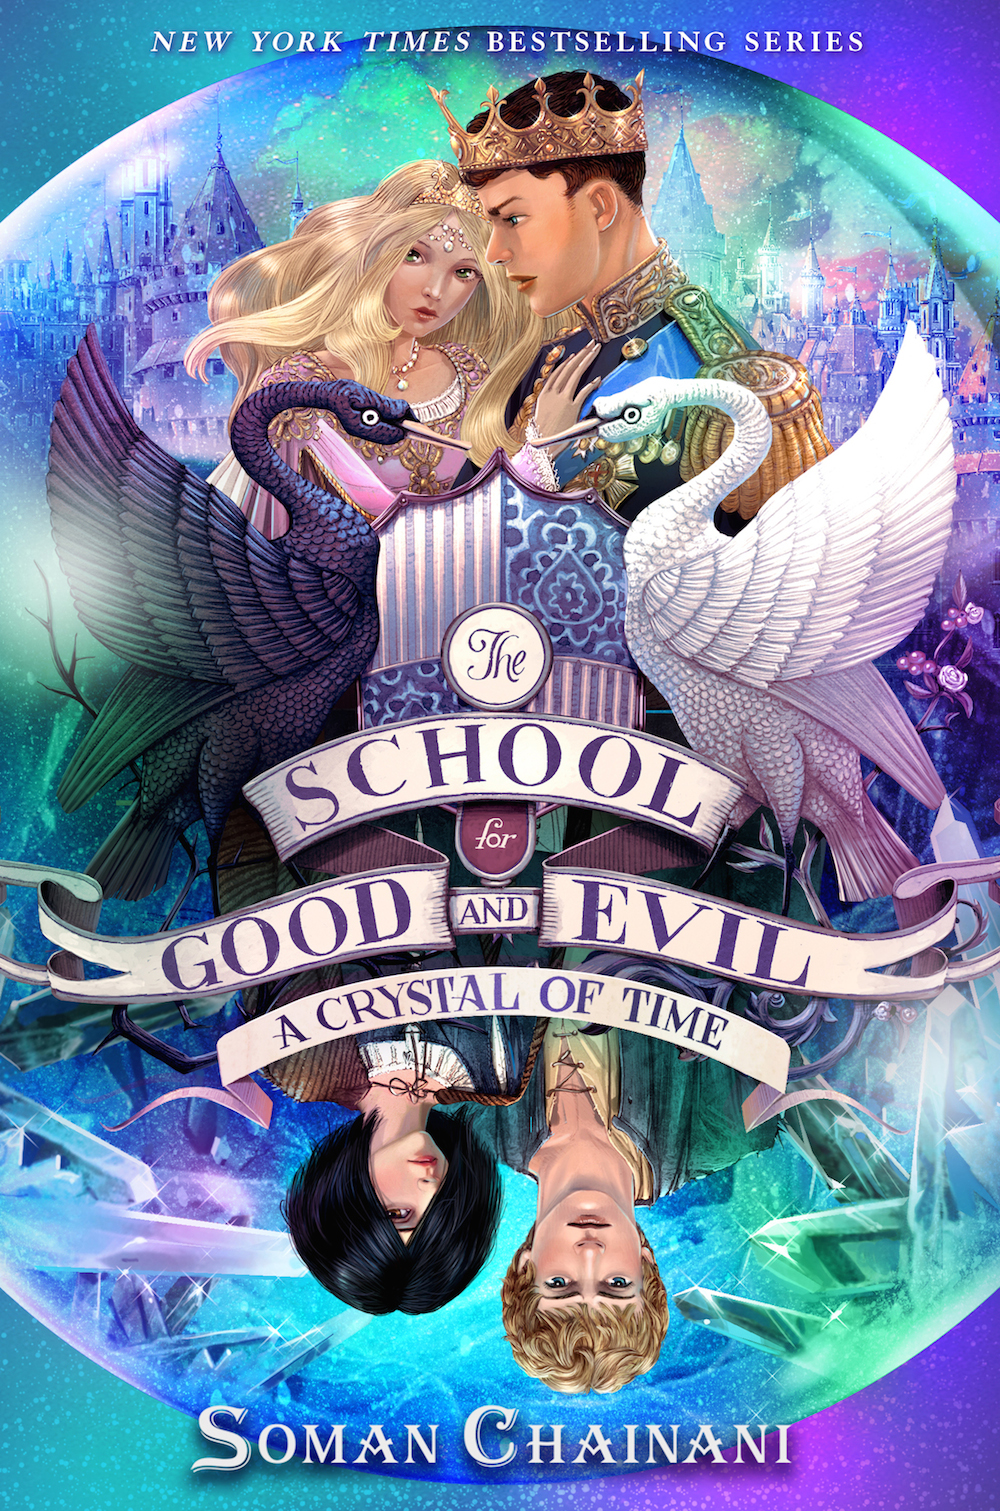 The School for Good and Evil: A Crystal of Time